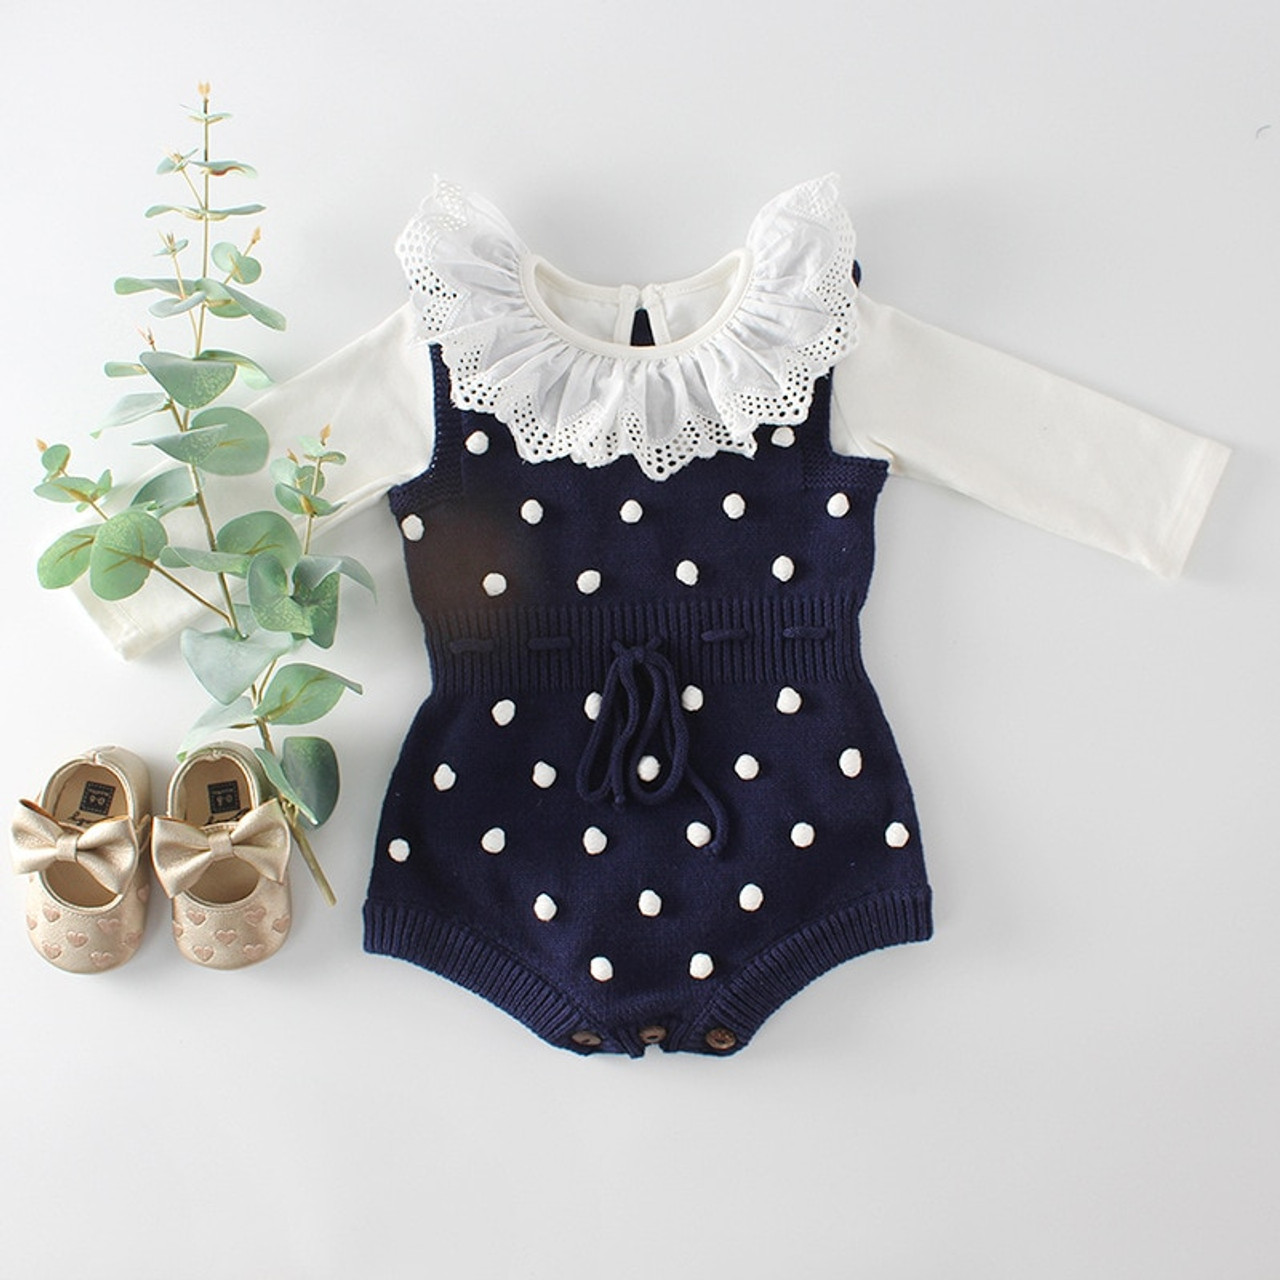 37b30fdab627 ... Baby Knitted Clothes Autumn Knit Baby Rompers Girl Pompom Baby Girl  Romper Boys Jumpsuit Overall Newnborn ...